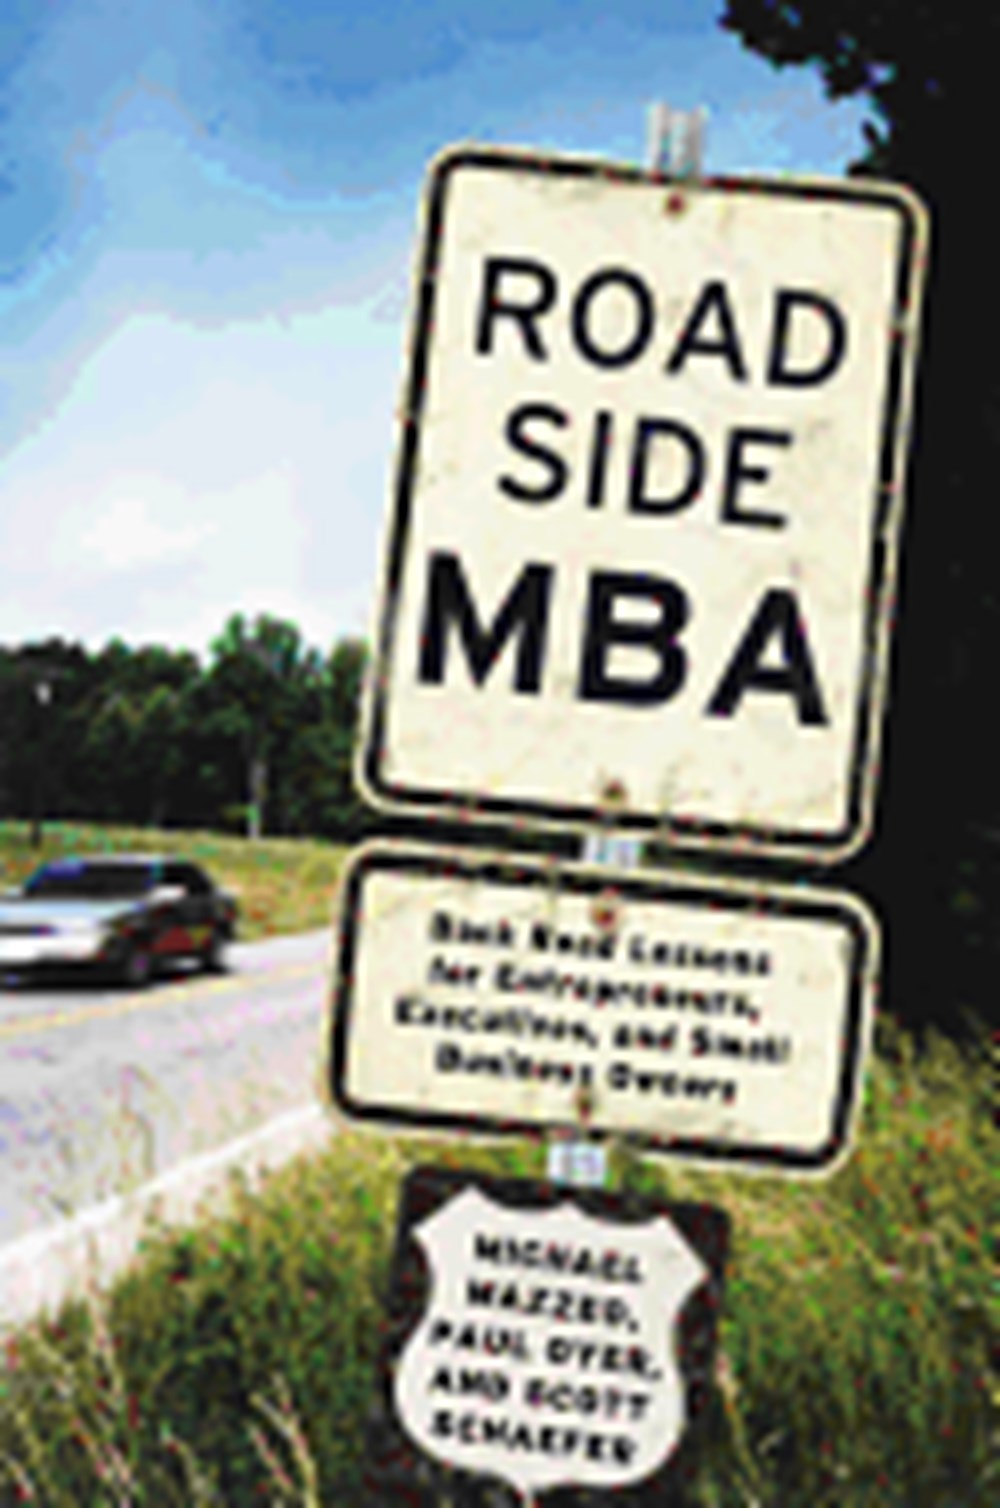 Roadside MBA Back Road Lessons for Entrepreneurs, Executives and Small Business Owners